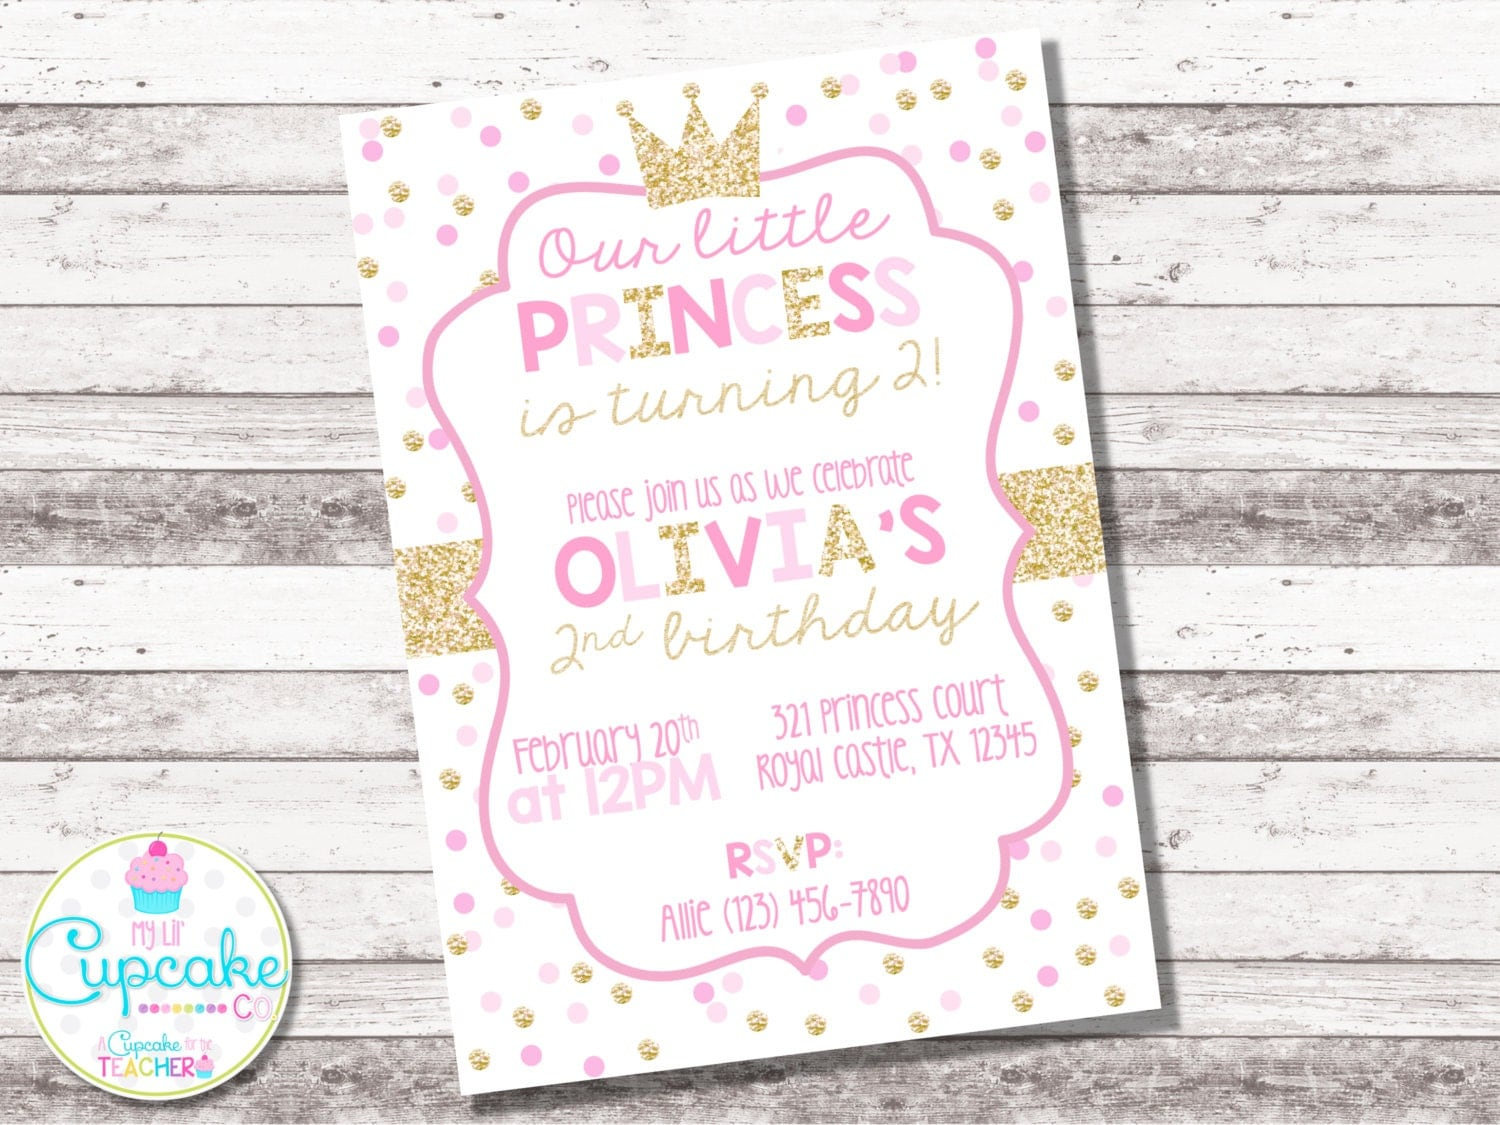 InvitationsByLittleP Pink And Gold 1st Birthday Invitations Princess Invitation